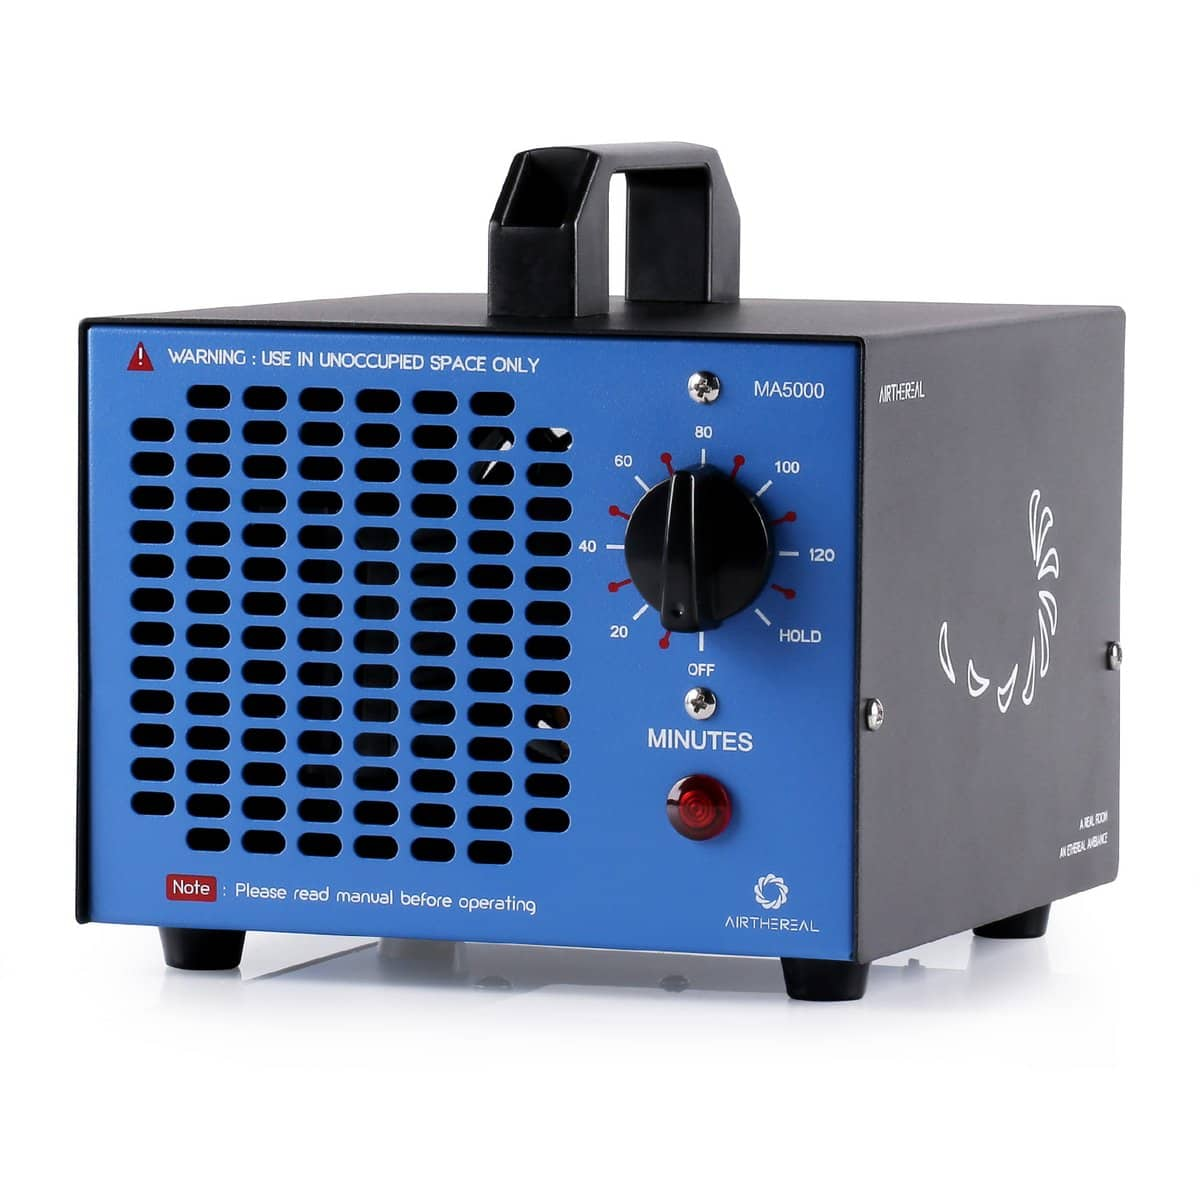 Airthereal MA5000 Commercial Ozone Generator 5000mg/h $57.38 USD free shipping